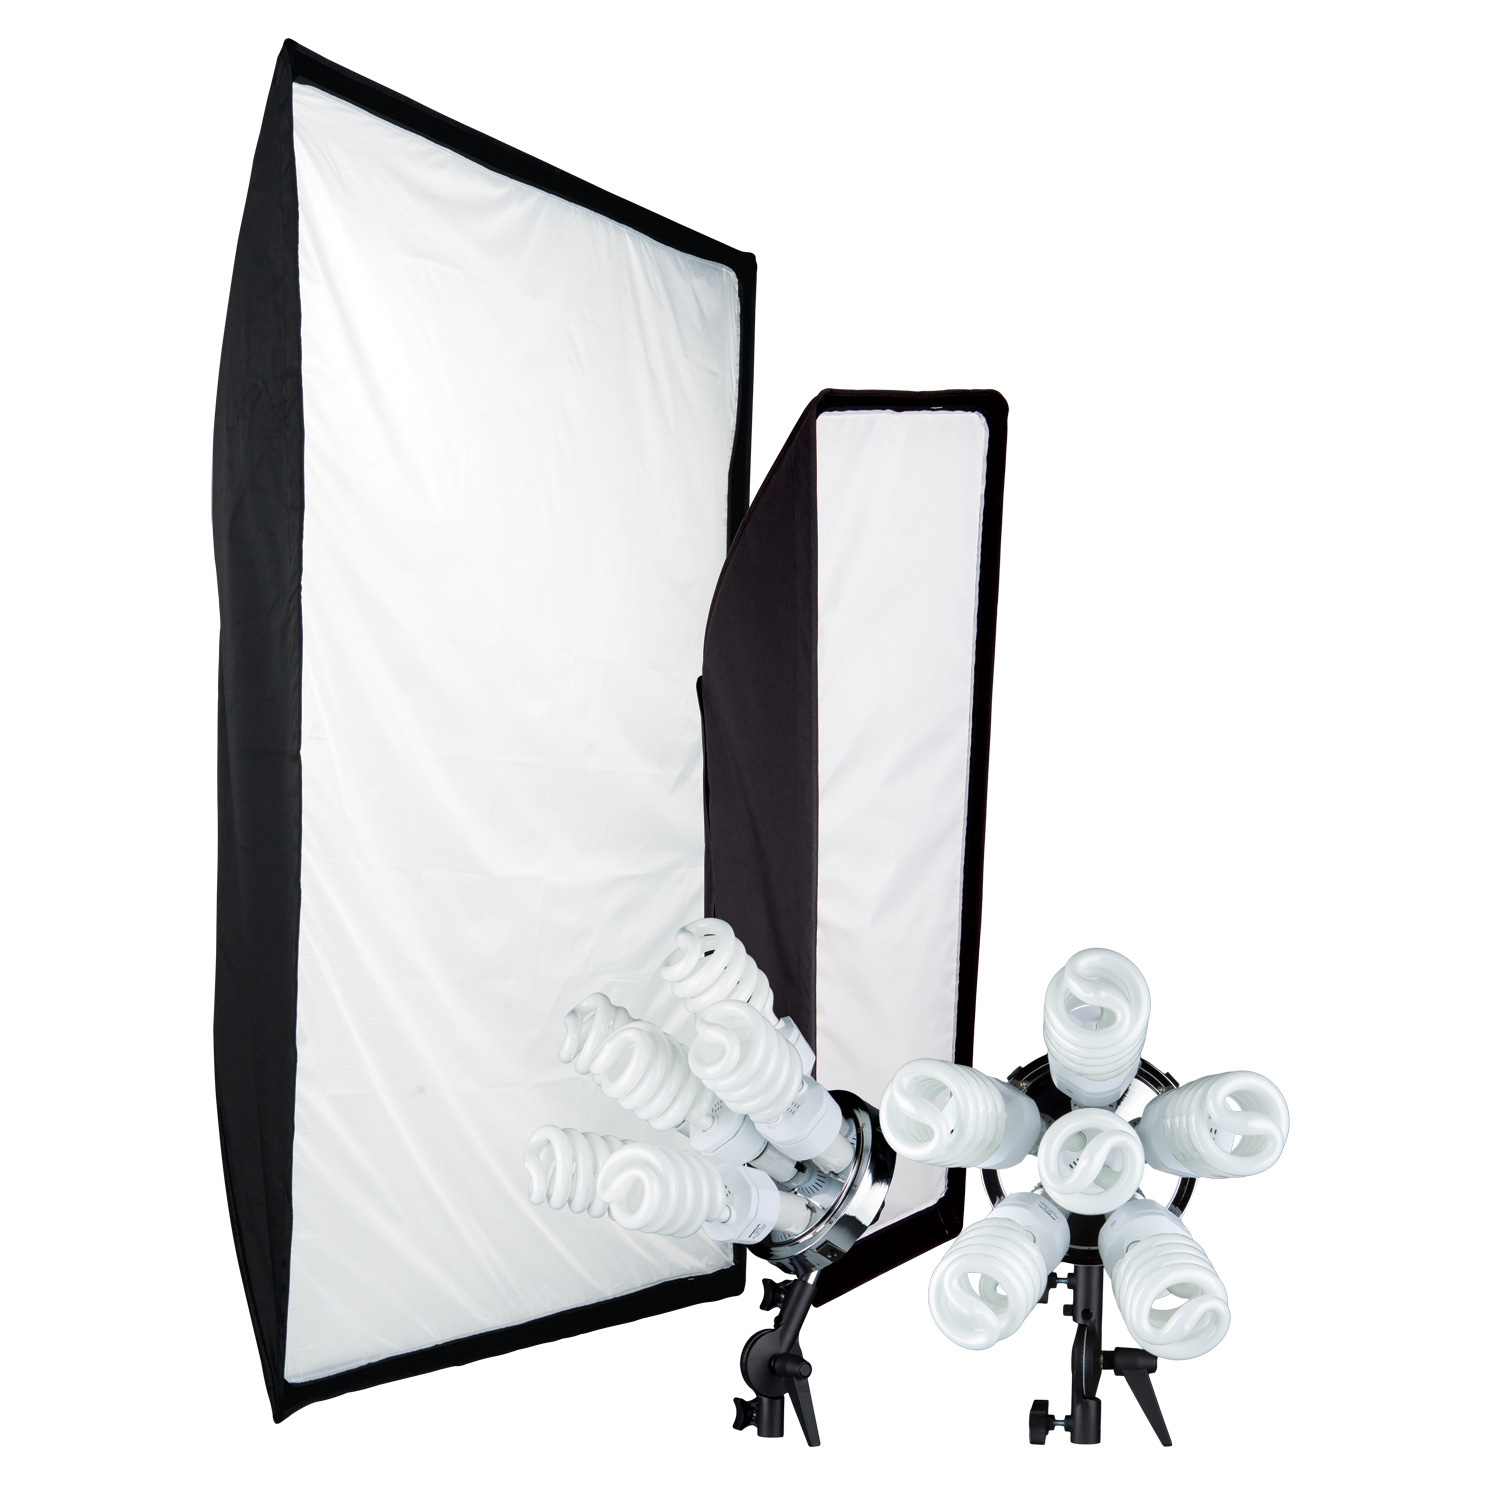 Spiderlite TD6 Shallow Softbox & Stripbank Kit